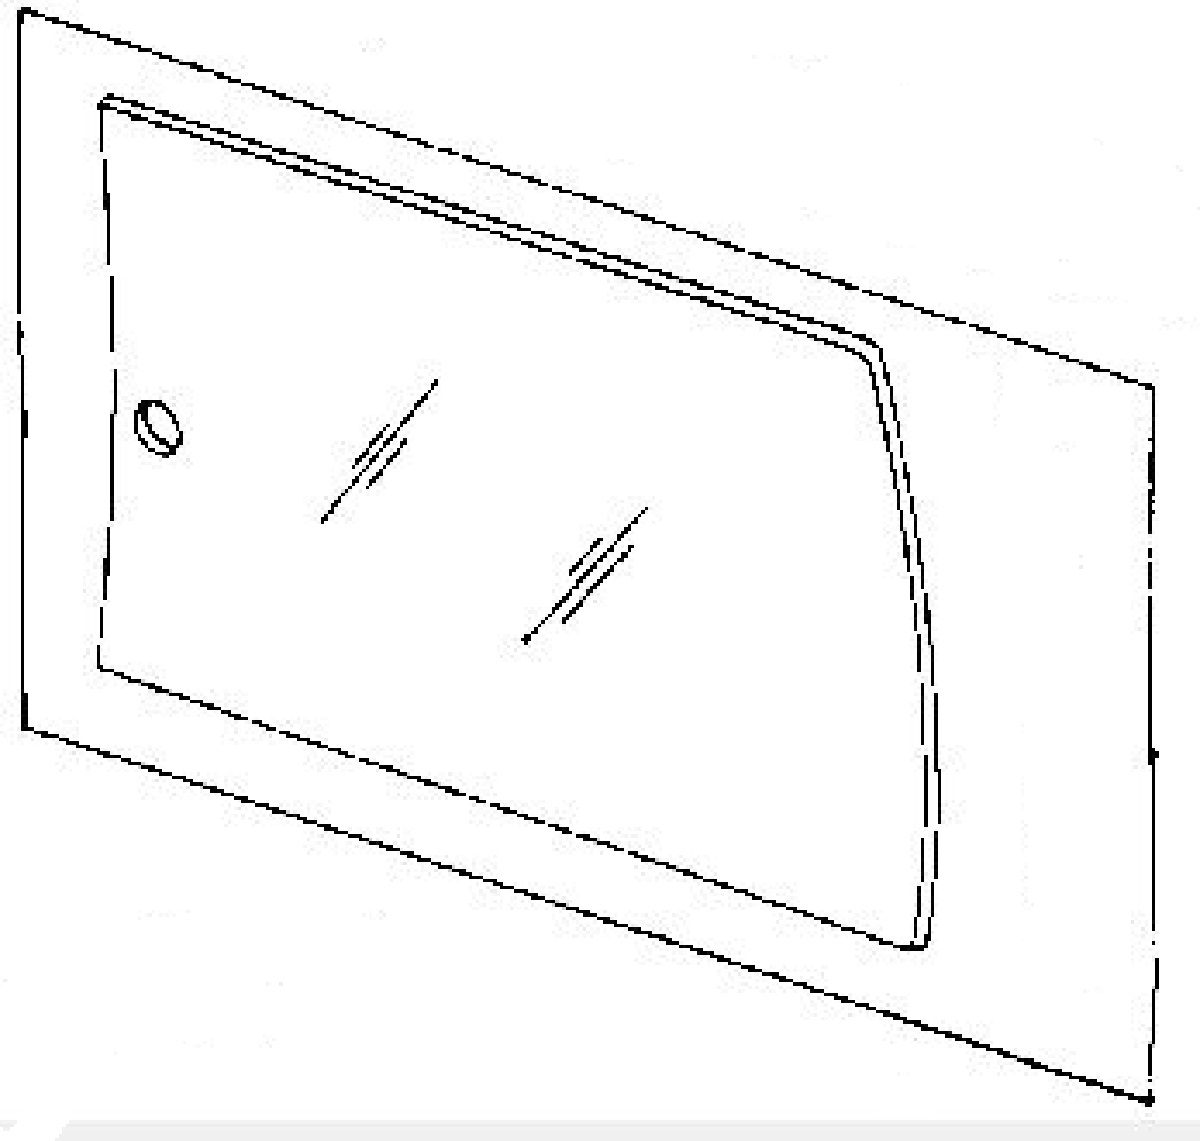 1990 pontiac 6000 door panel removal instructions window